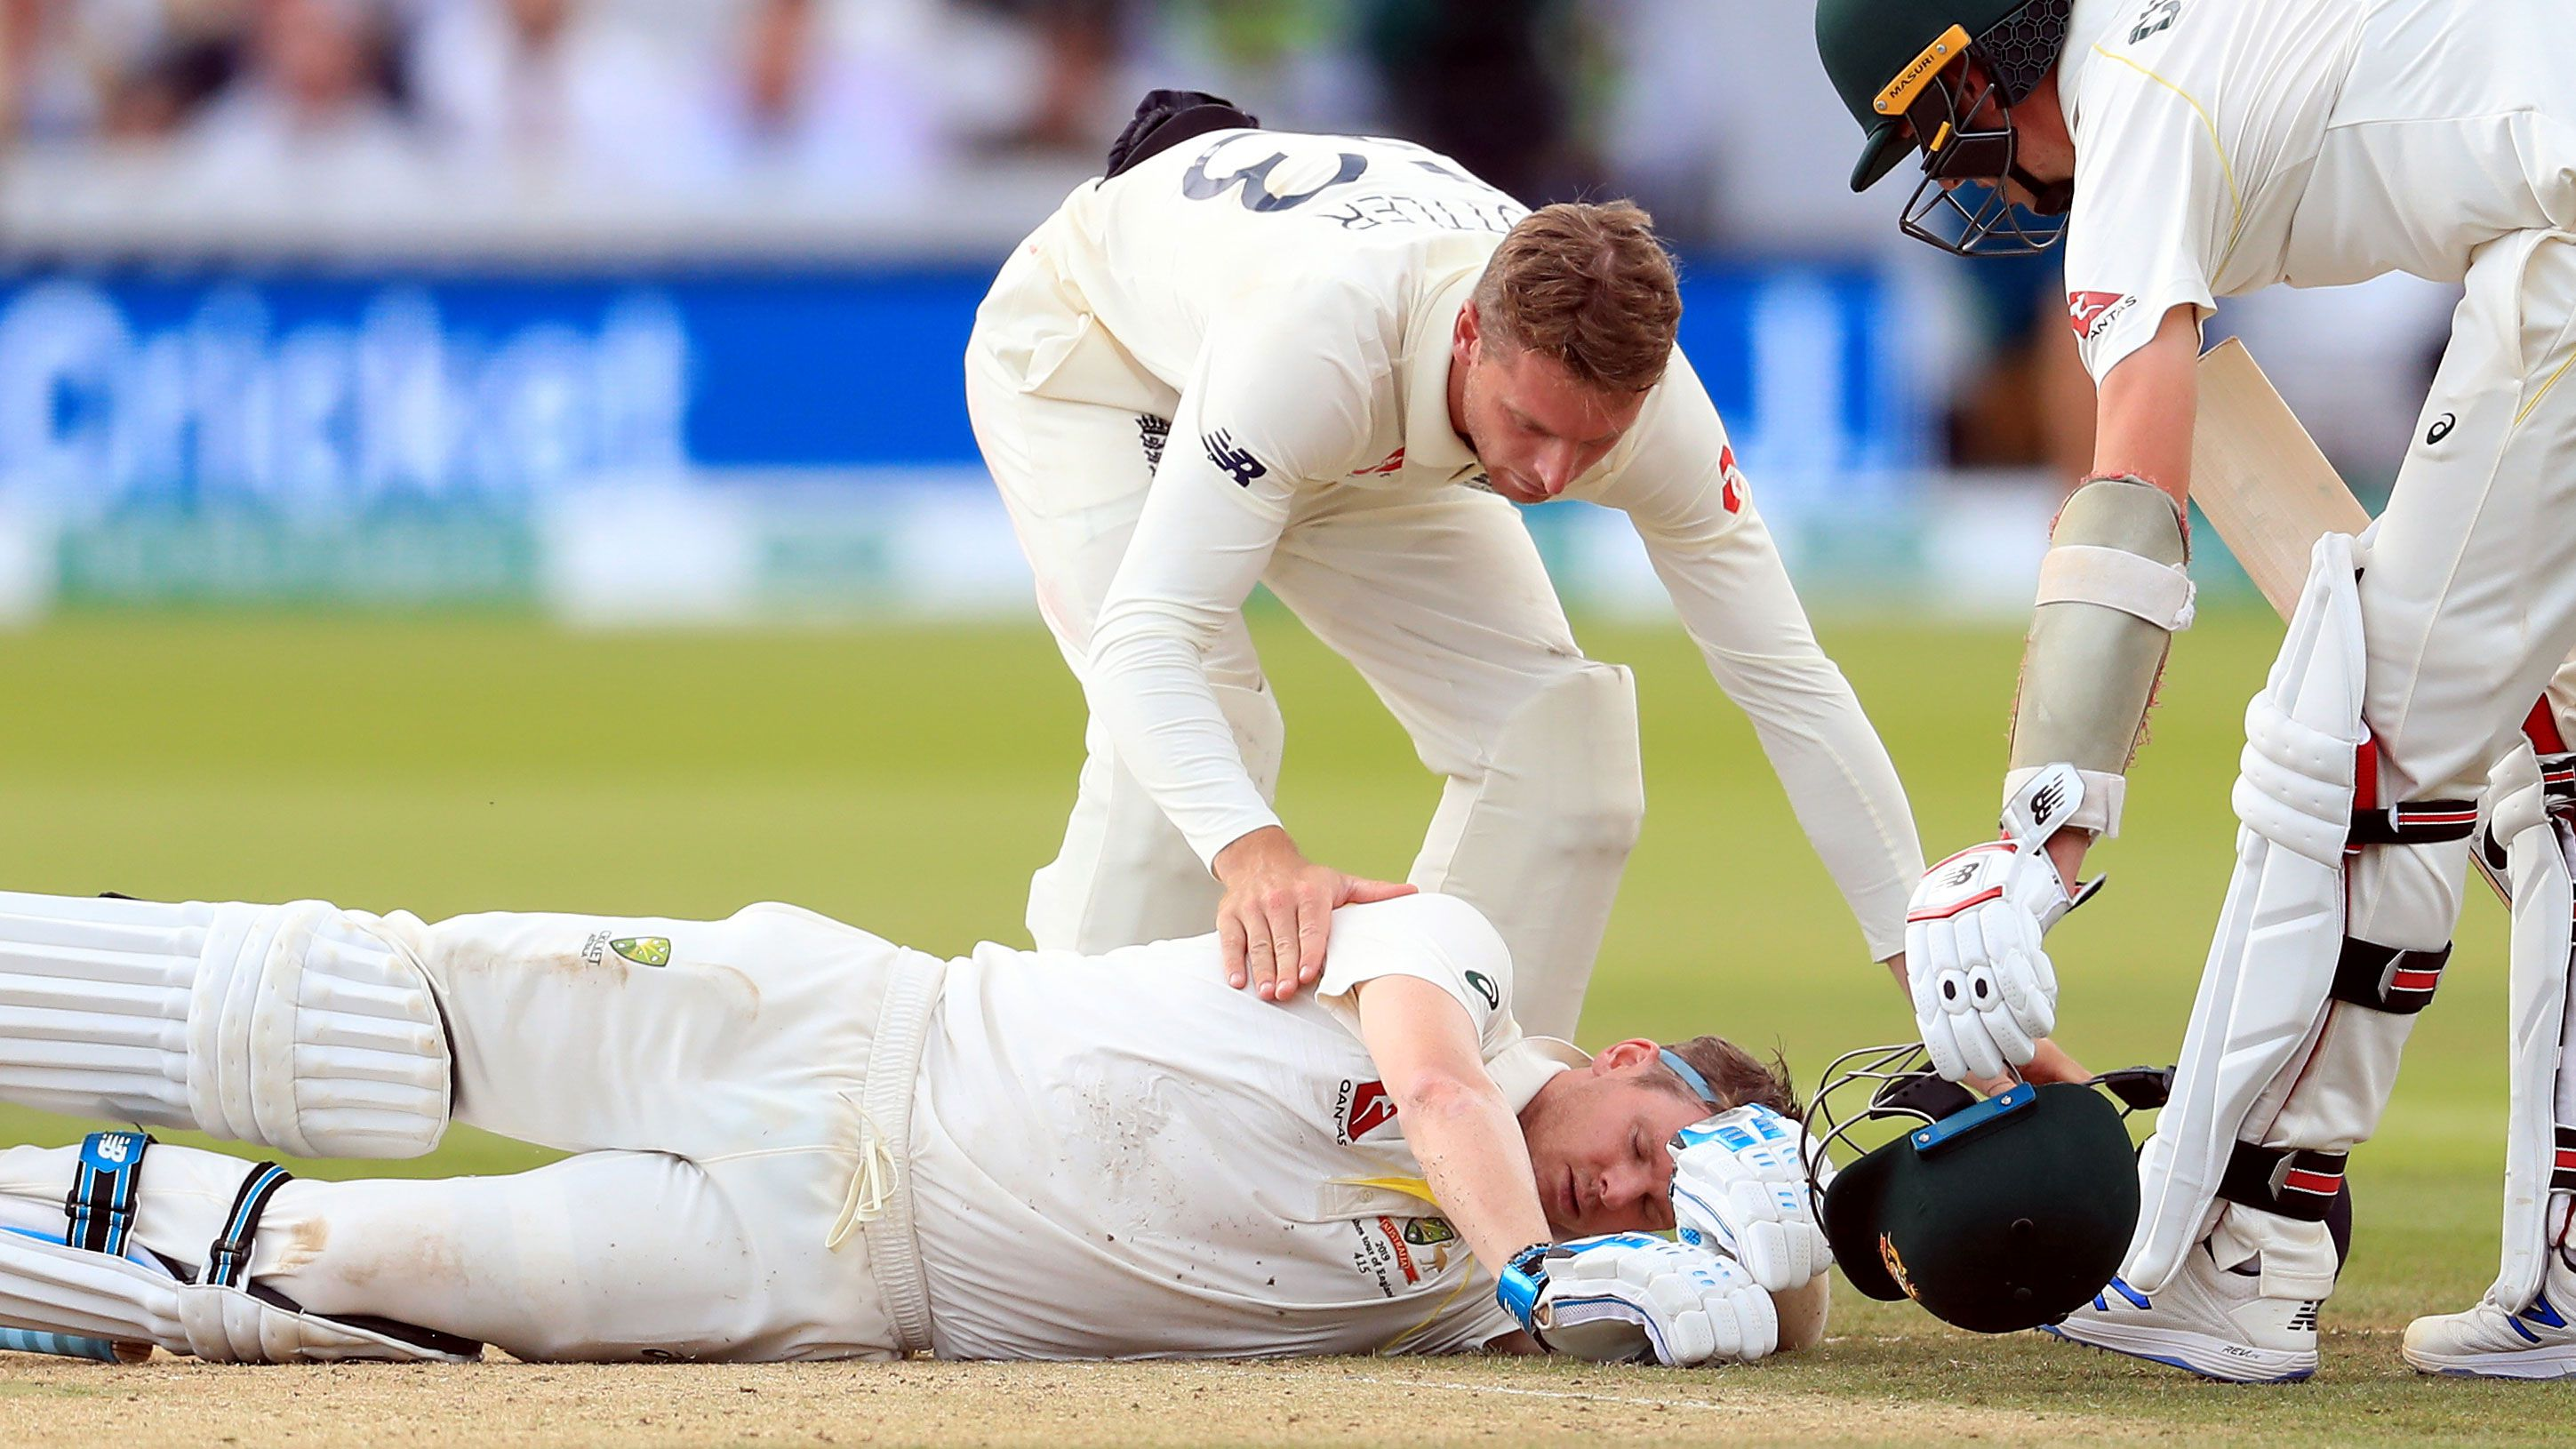 Players from both sides check on Steve Smith after he is felled by a Jofra Archer bouncer.